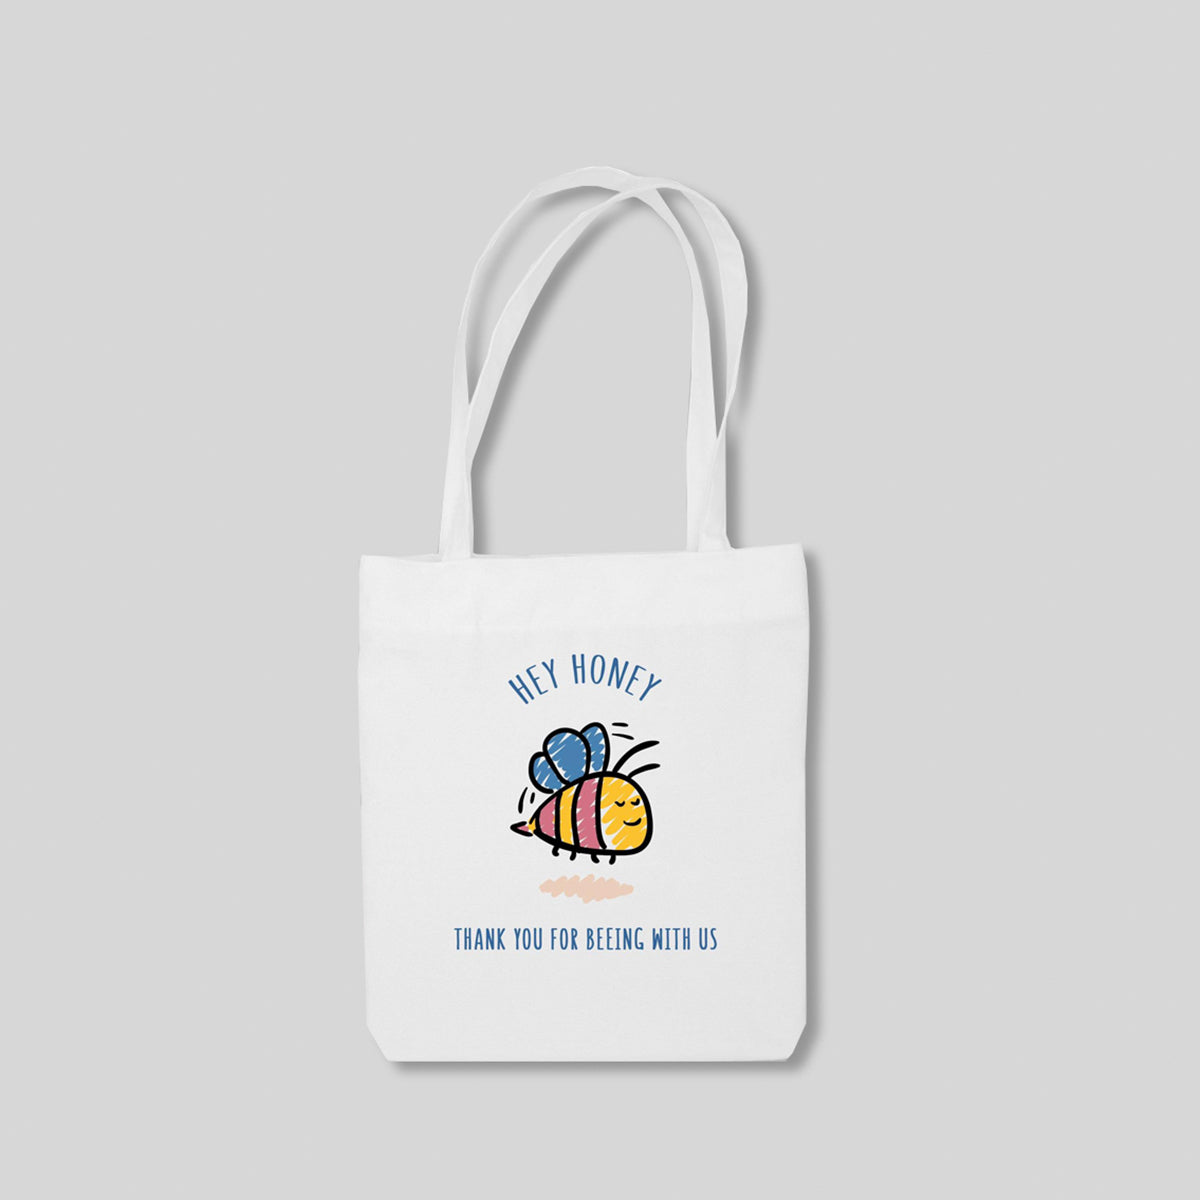 Tote 2in1 Printed